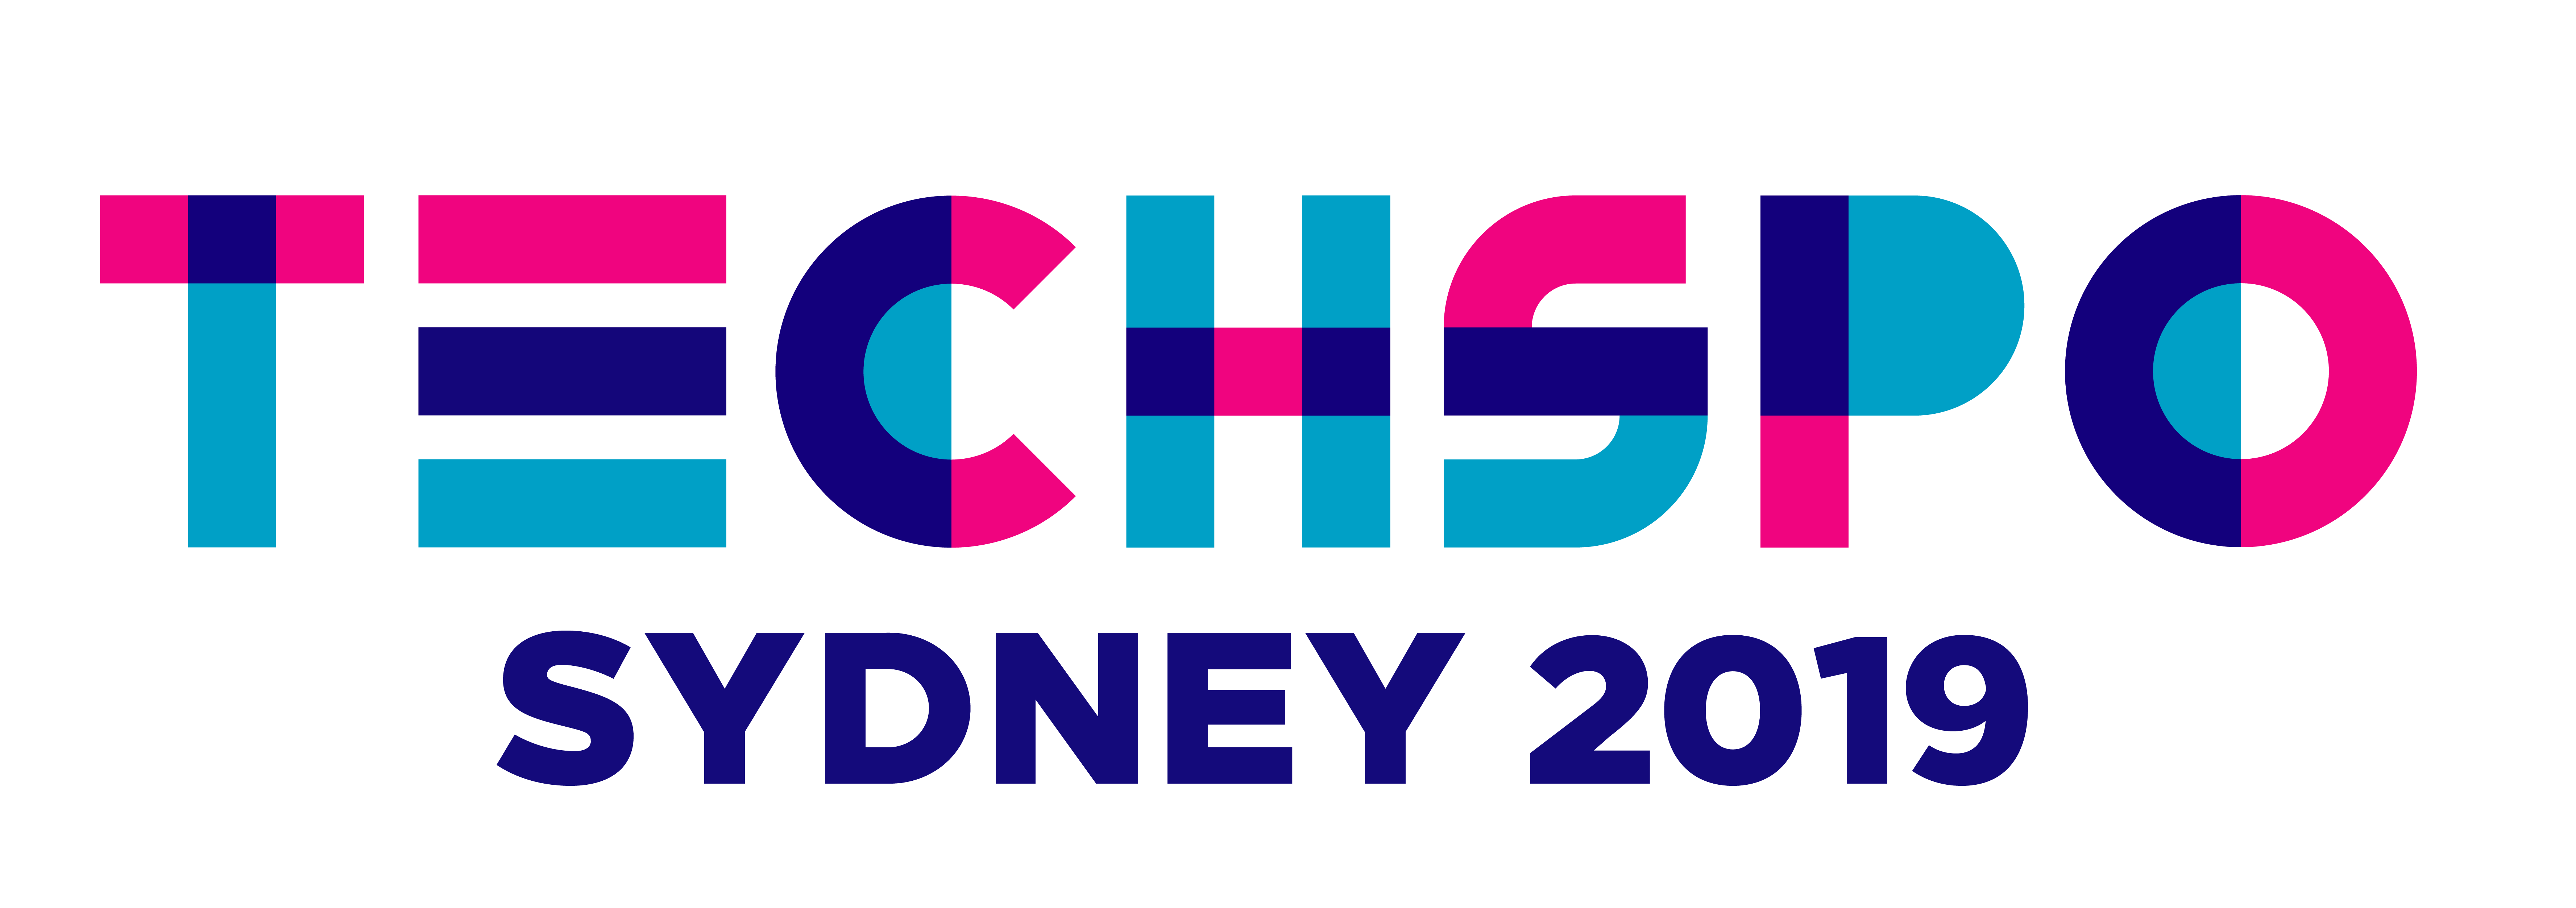 TECHSPO Sydney 2019 is a two-day technology expo